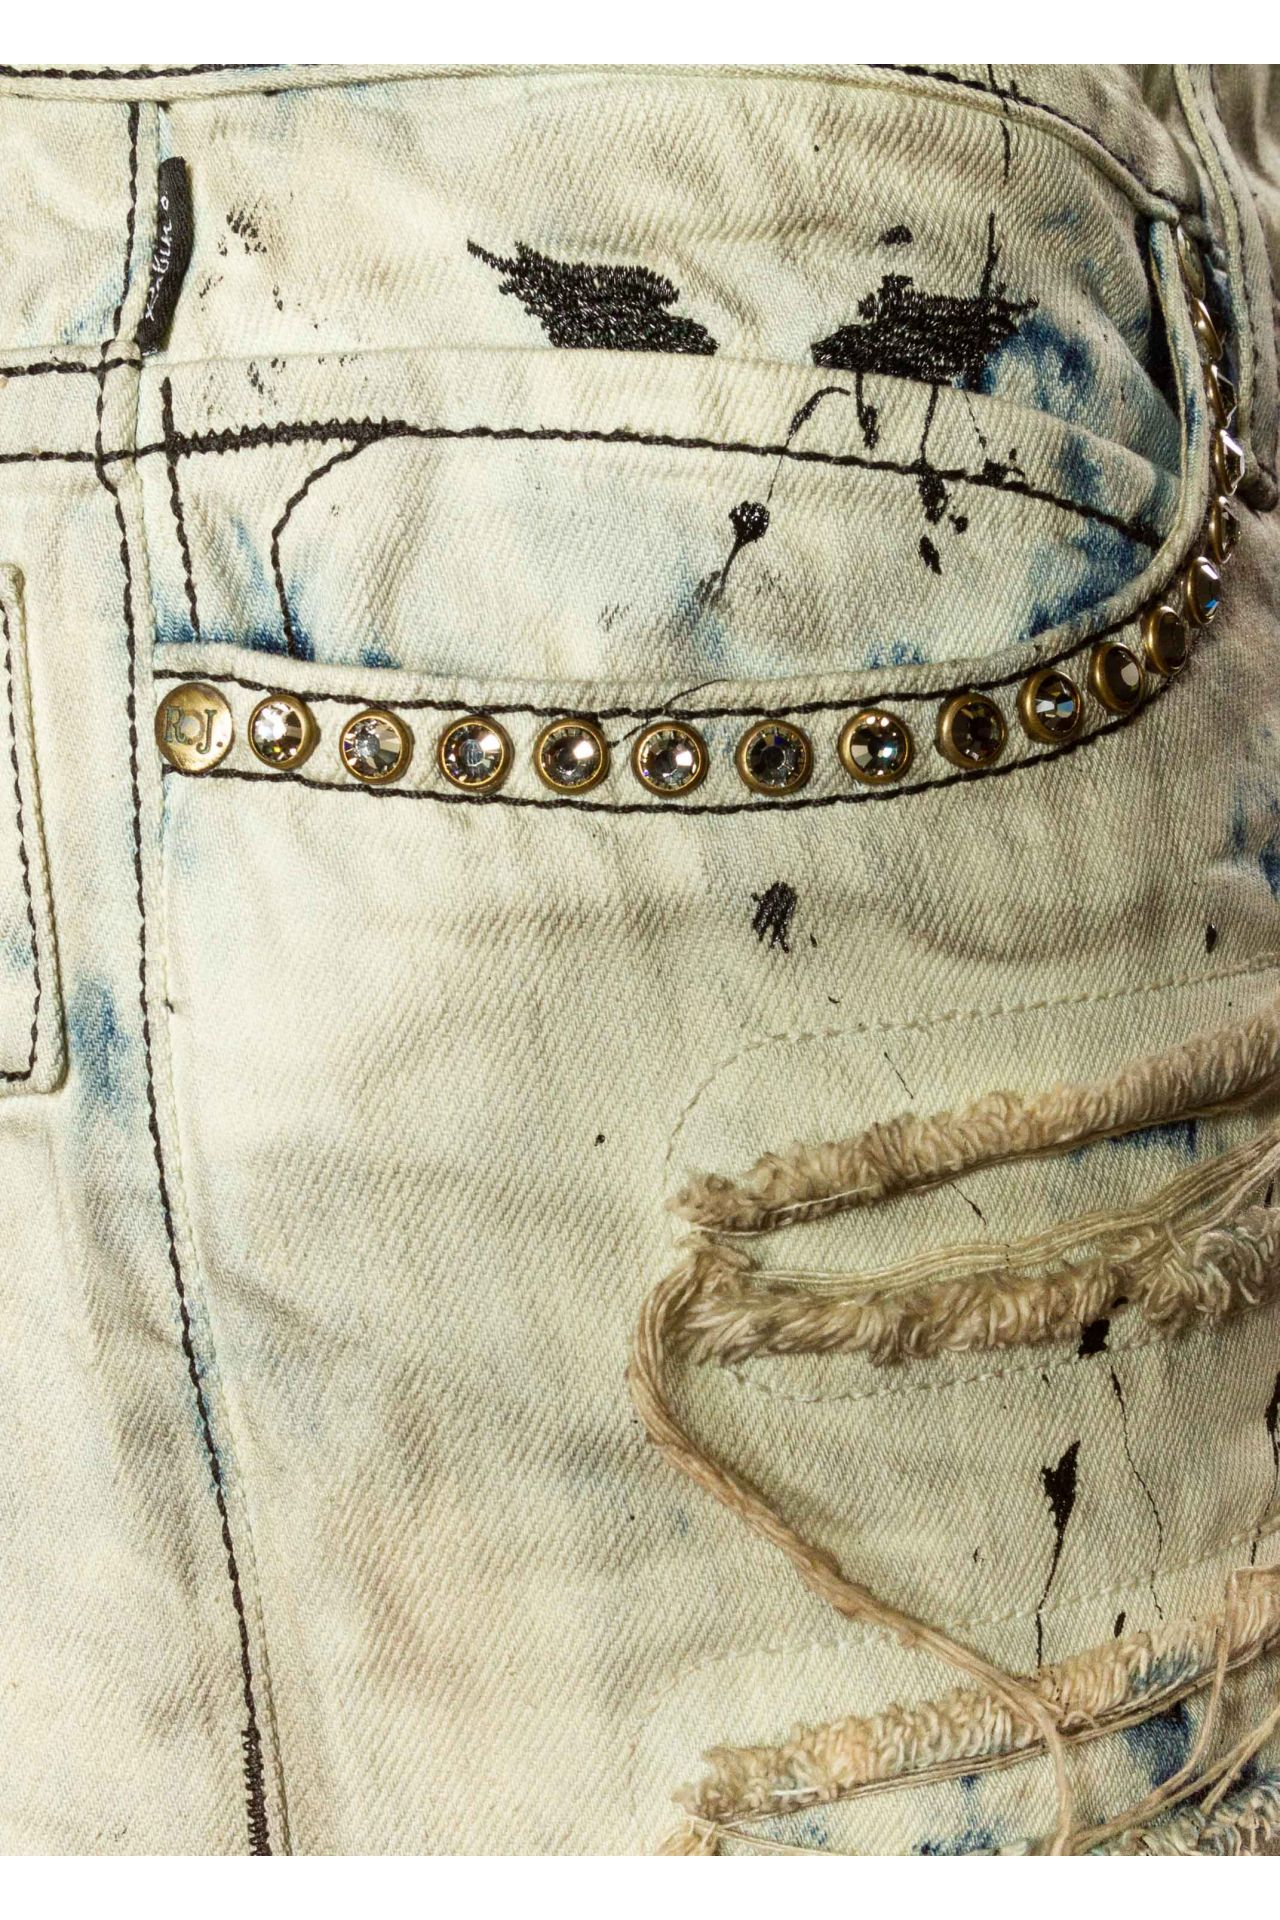 LONG FLAP IN DESTROY ACID WASH WITH CRYSTALS